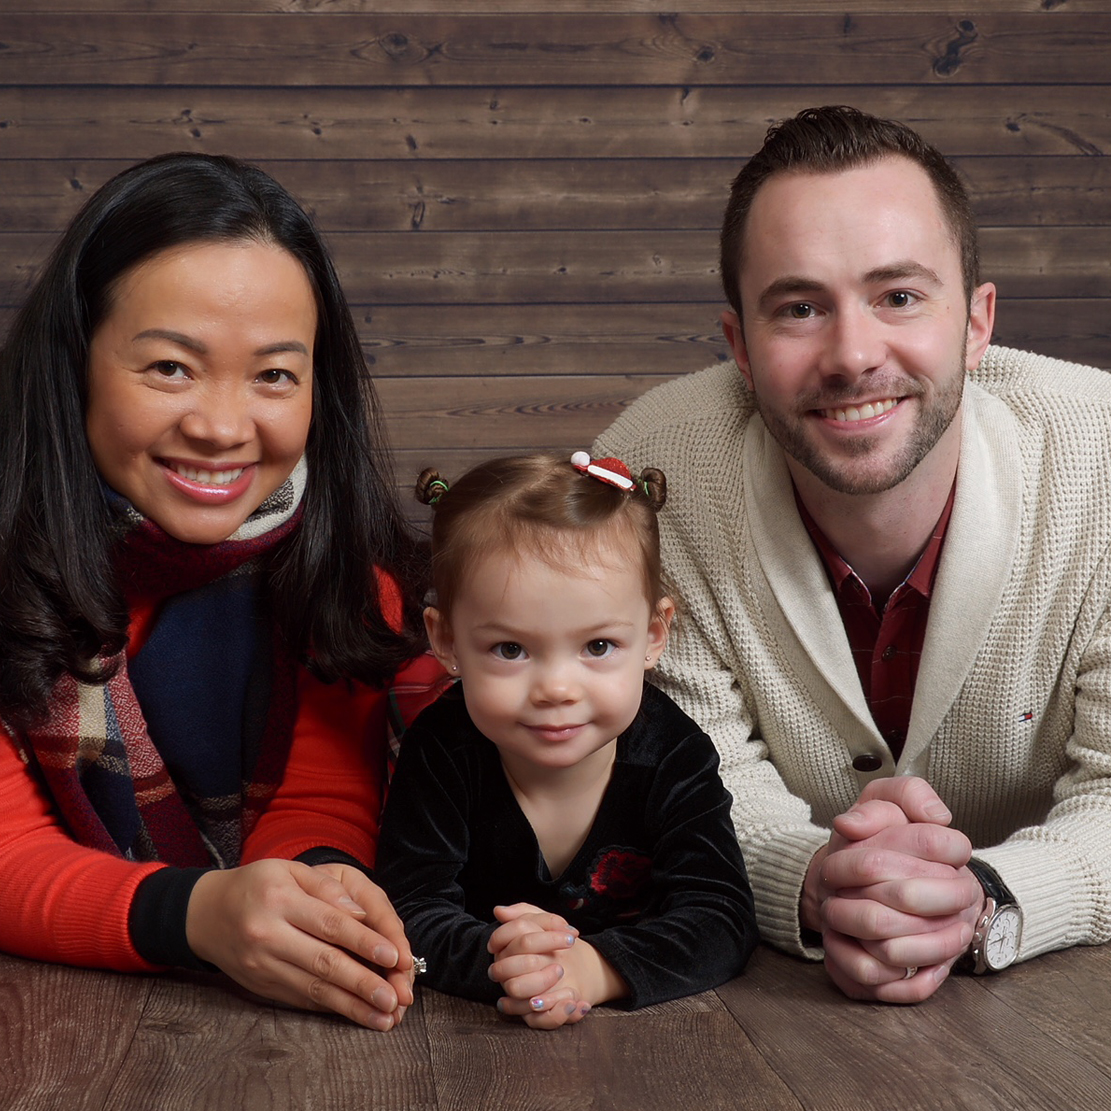 Jason Hinkle with his family in a holiday portrait